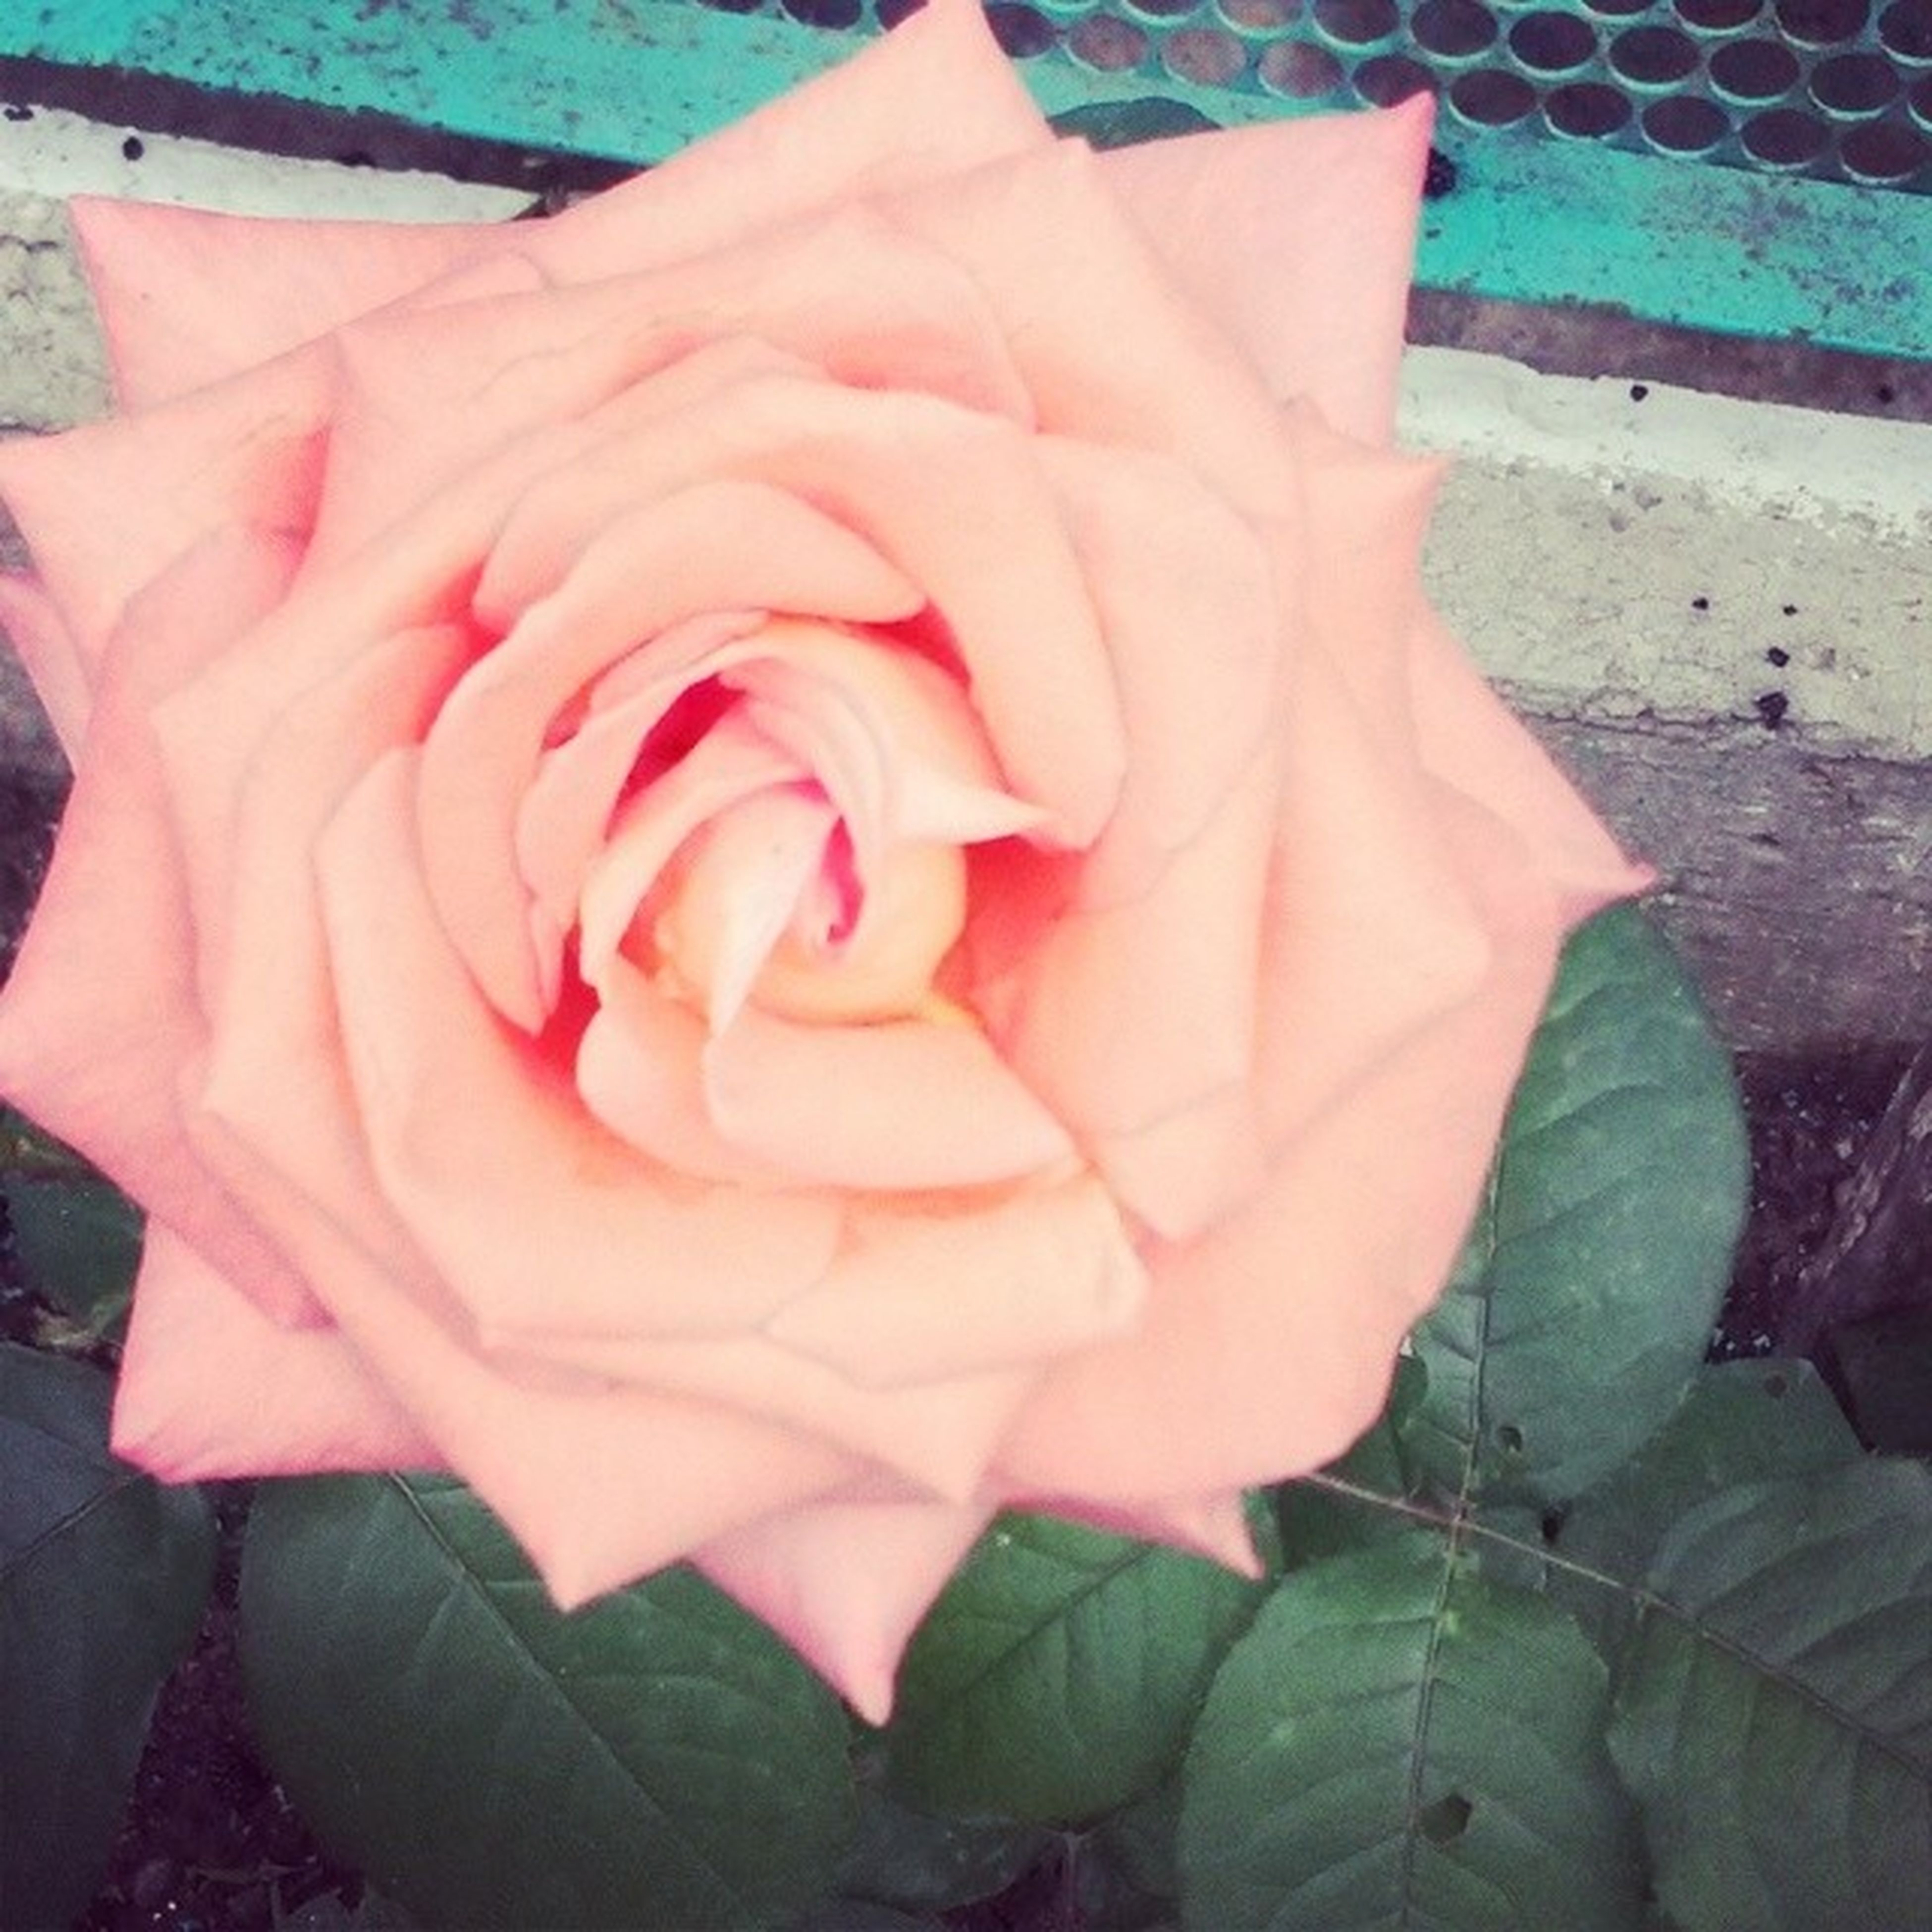 flower, petal, flower head, rose - flower, fragility, freshness, single flower, close-up, pink color, beauty in nature, leaf, growth, nature, rose, plant, blooming, high angle view, no people, day, focus on foreground